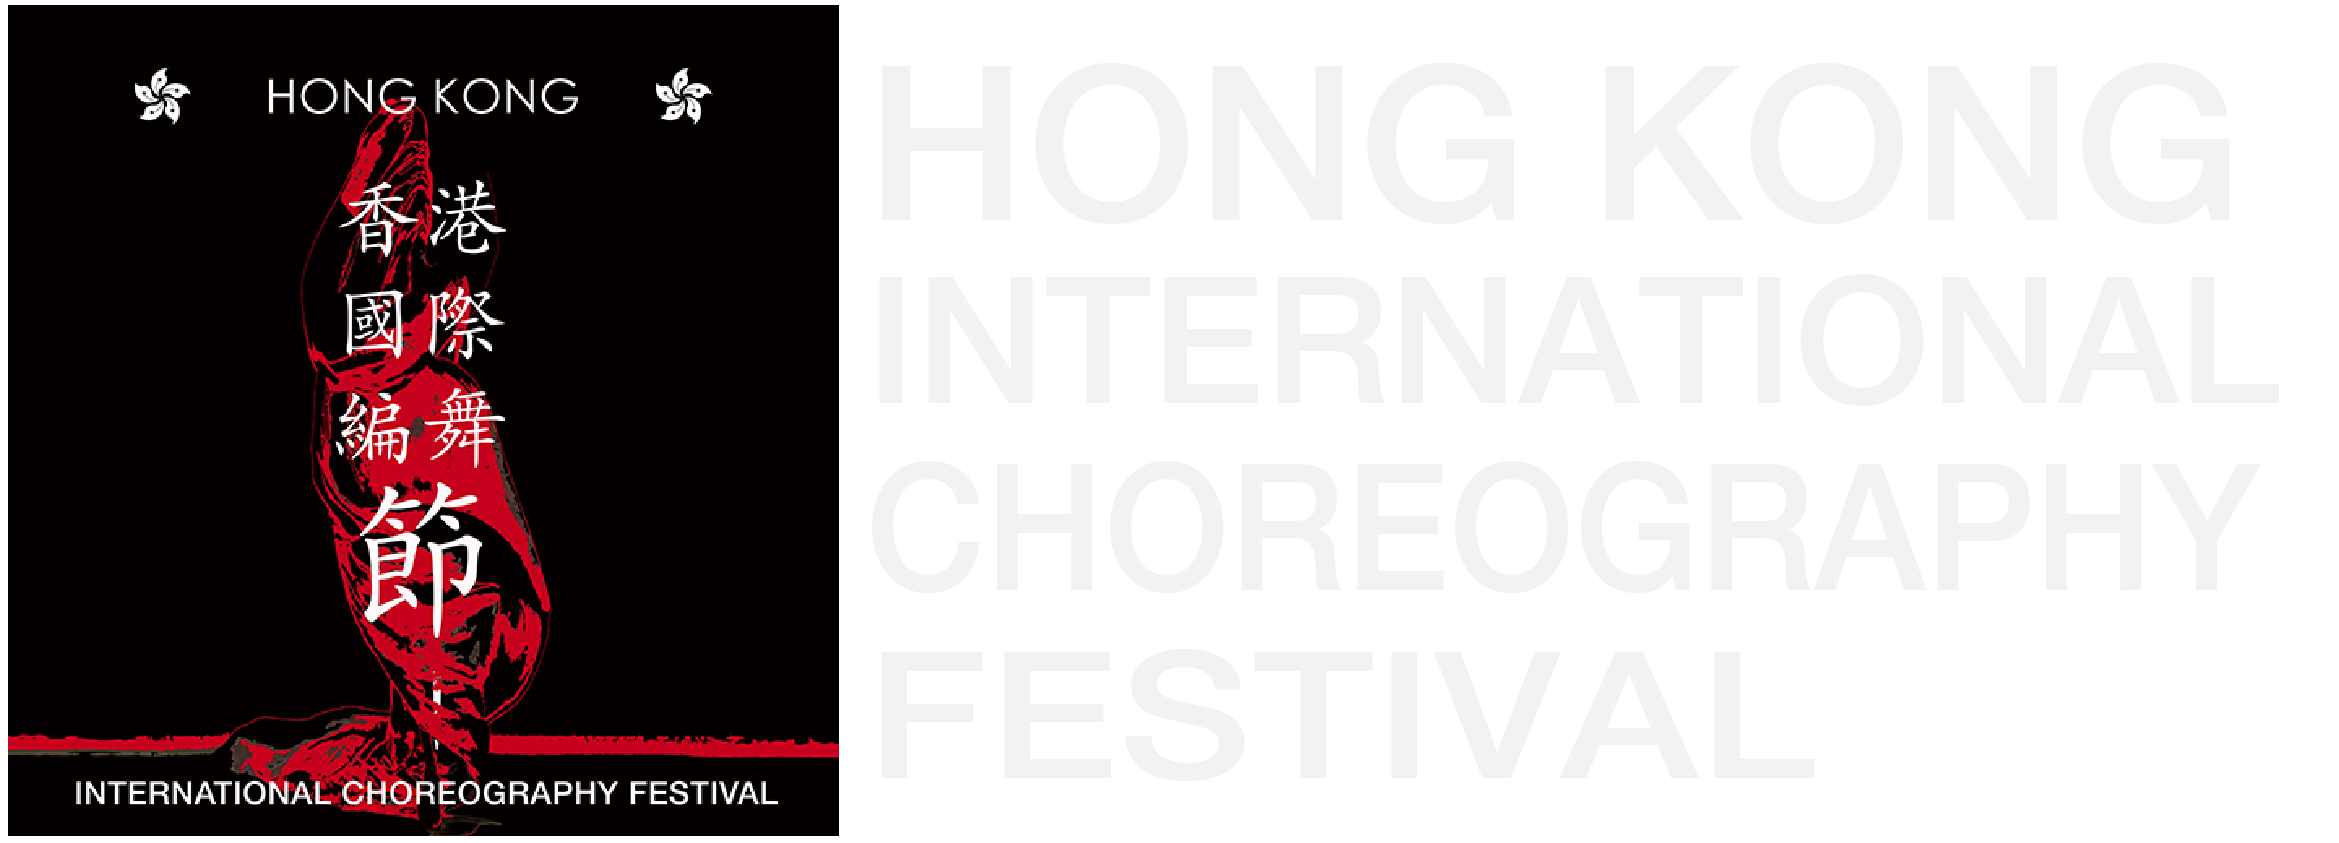 Hong Kong International Choreography Festival